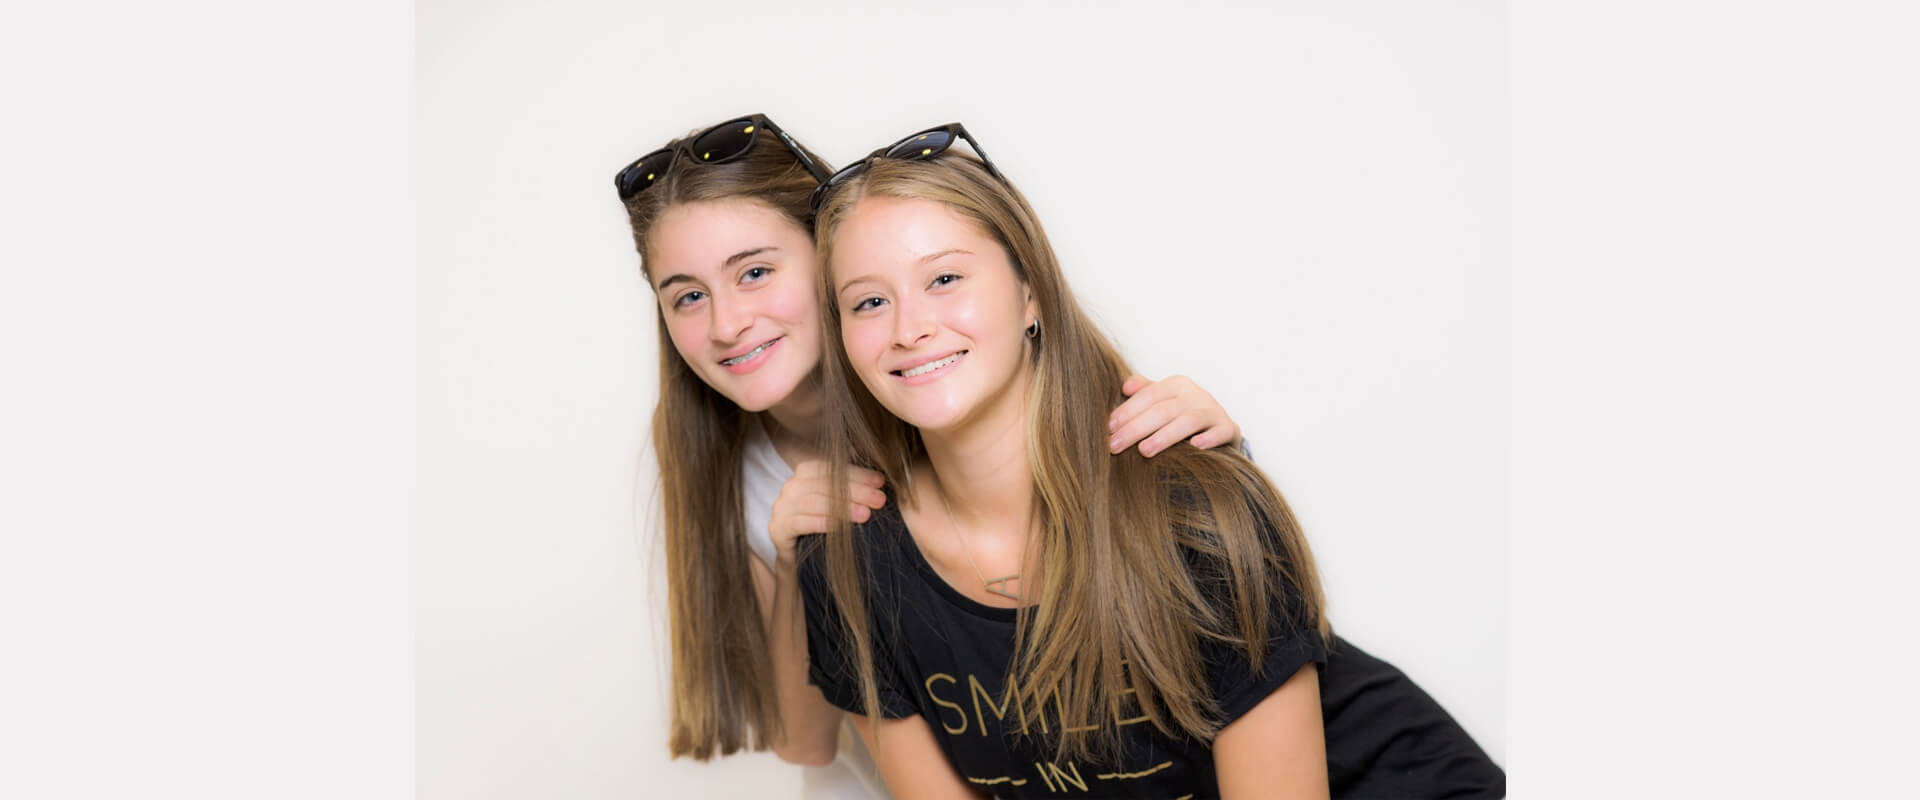 Two young ladies smiling aesthetically looking at the camera